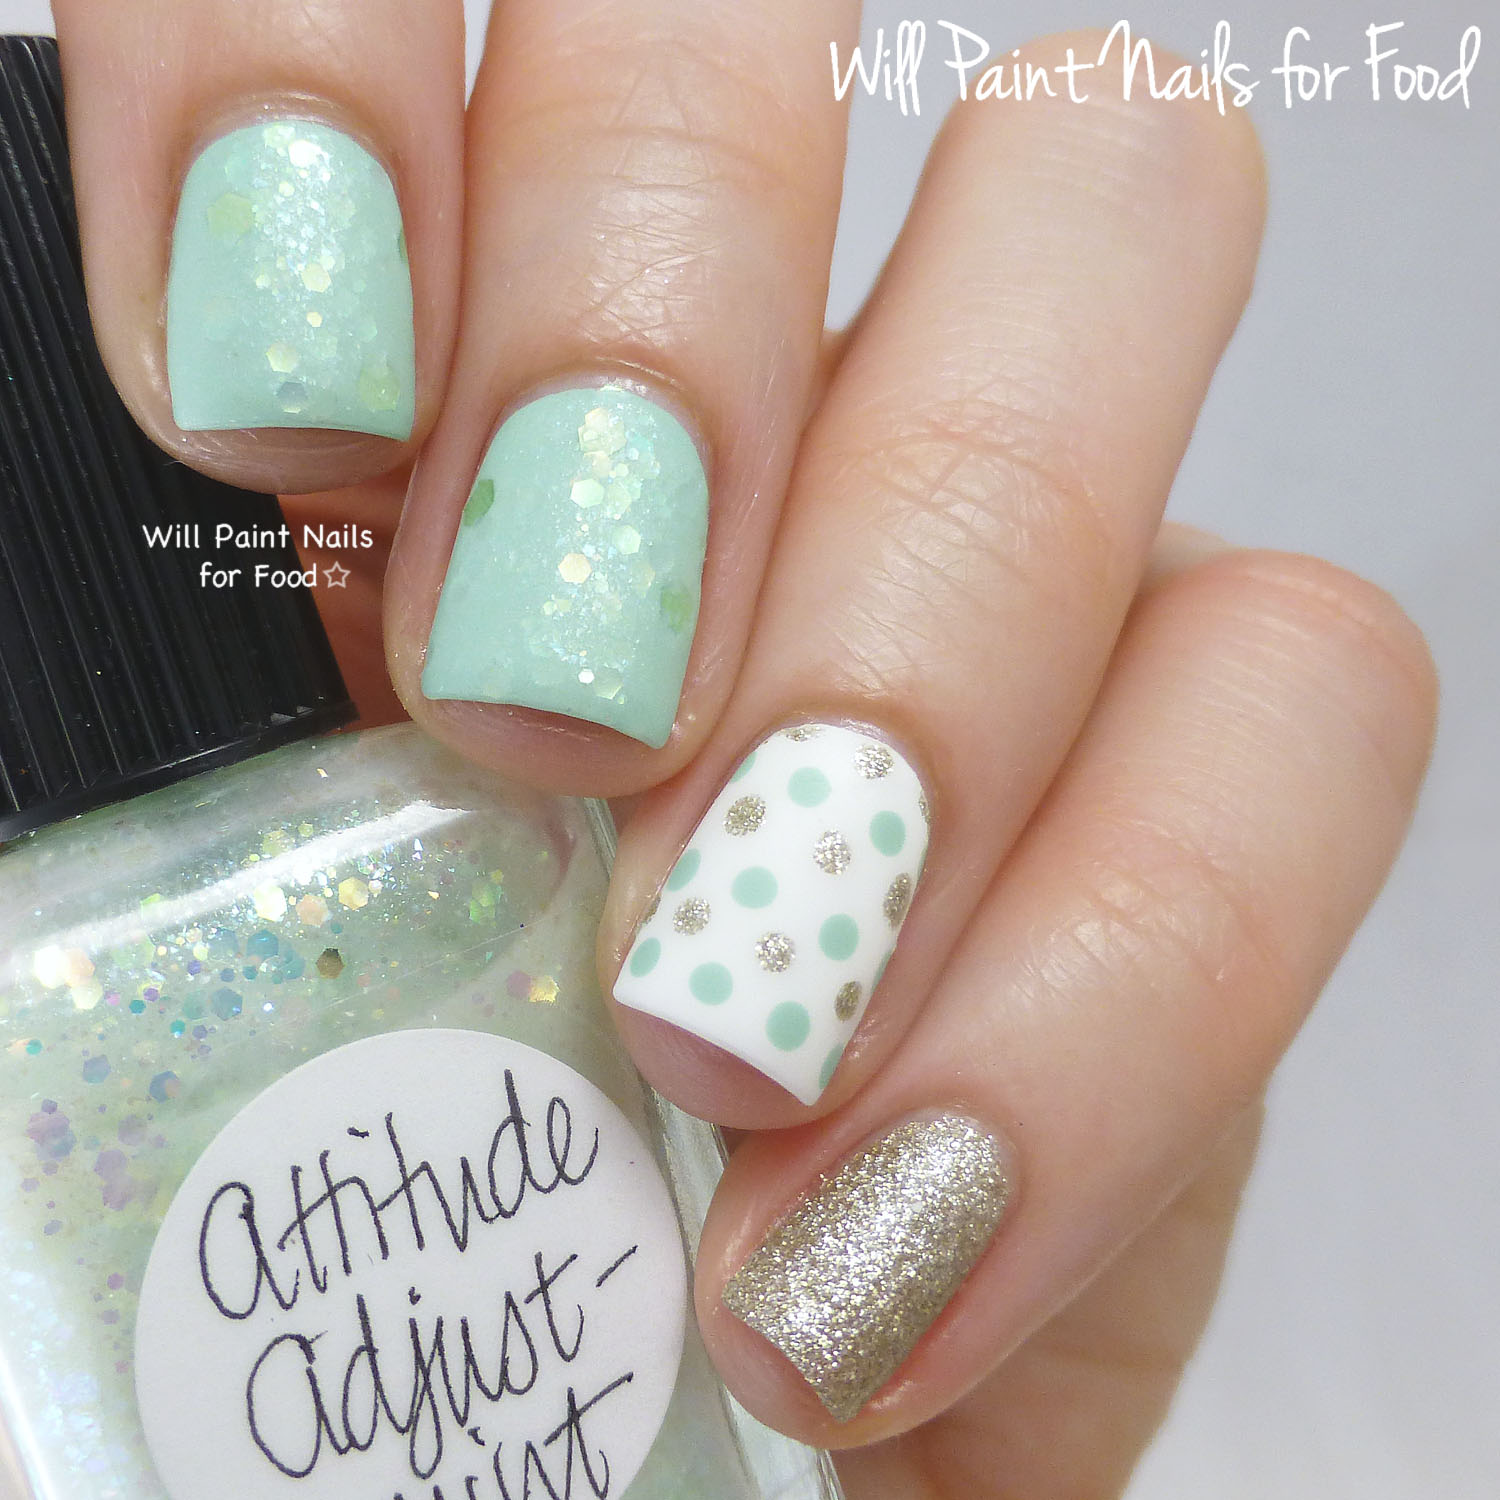 Lynnderella attitude adjust mint swatches and nail art will lynnderella attitude adjust mint i topped it all off with girly bits glitter glaze and essie matte about you for me the matte finish really makes this prinsesfo Gallery